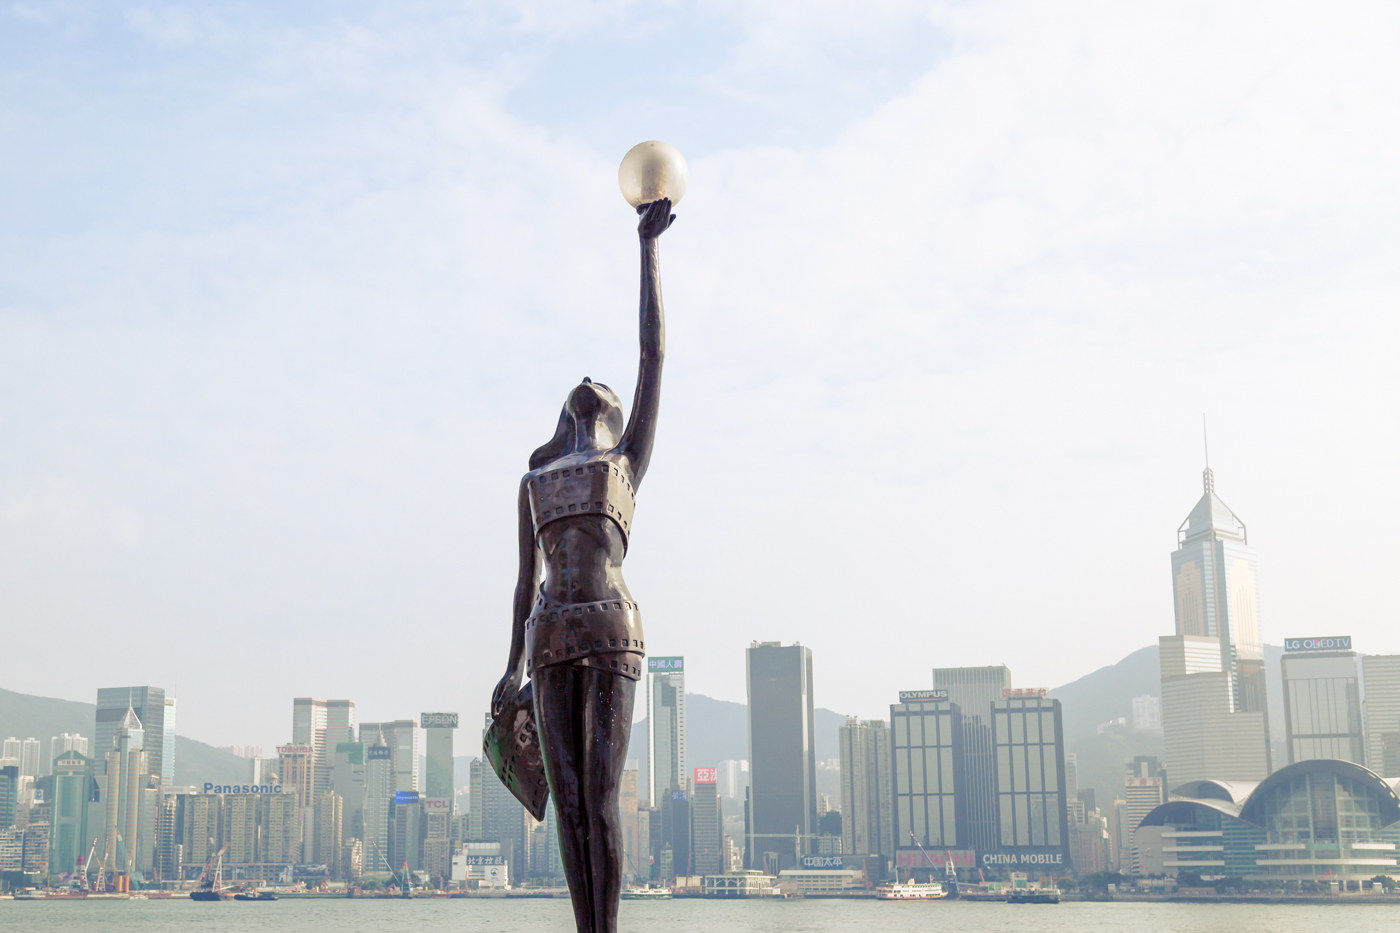 Avenue of the Stars, located along the Victoria Harbour waterfront in Tsim Sha Tsui.